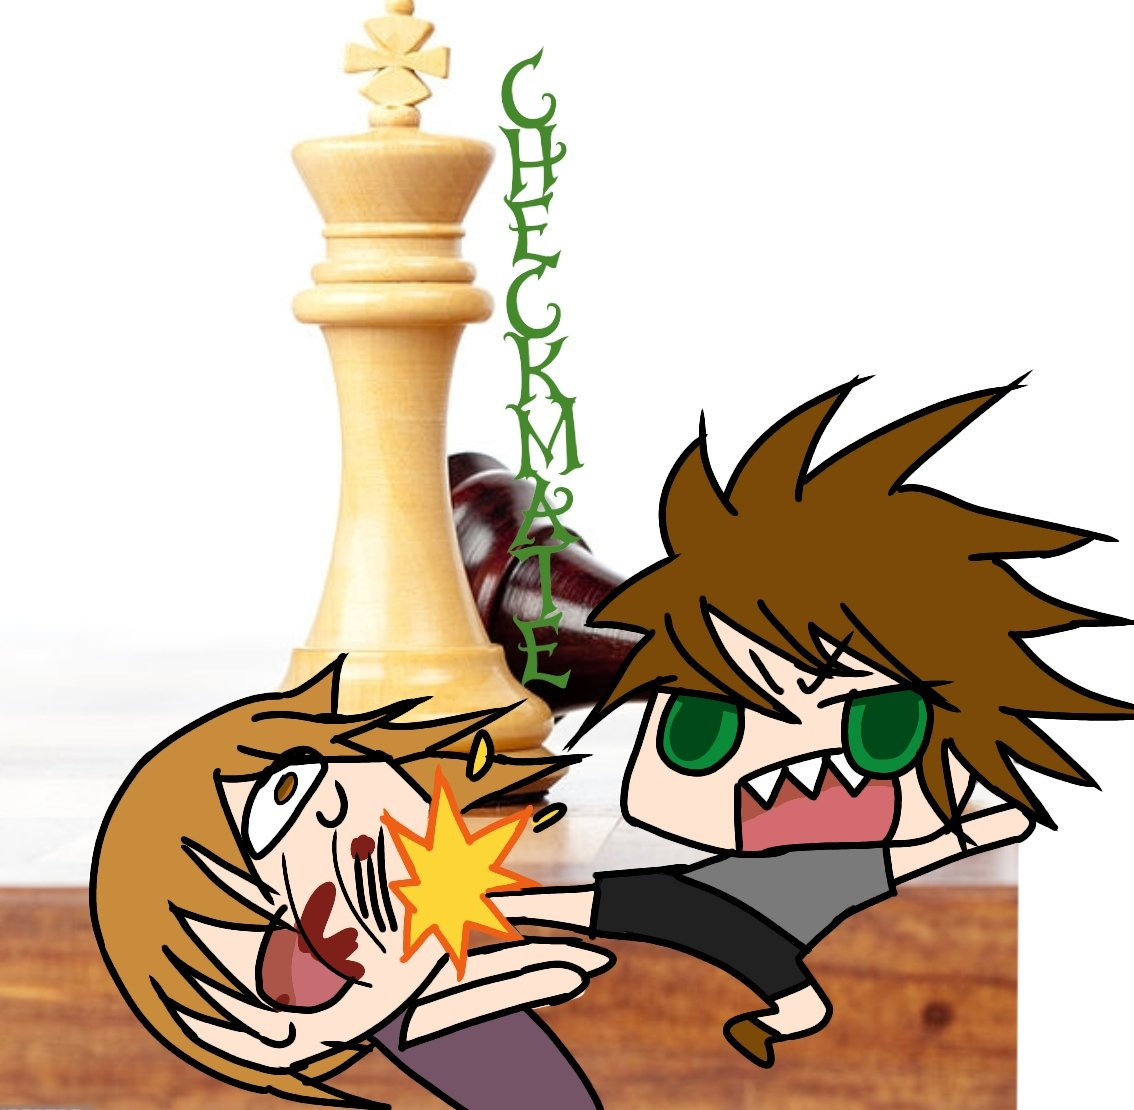 "Haseo's Animation (under remodeling) on Twitter: ""@theodd1sout can we do an  MMA chess match instead of chess boxing? and use life sized pieces too XD  #theodd1sout… """